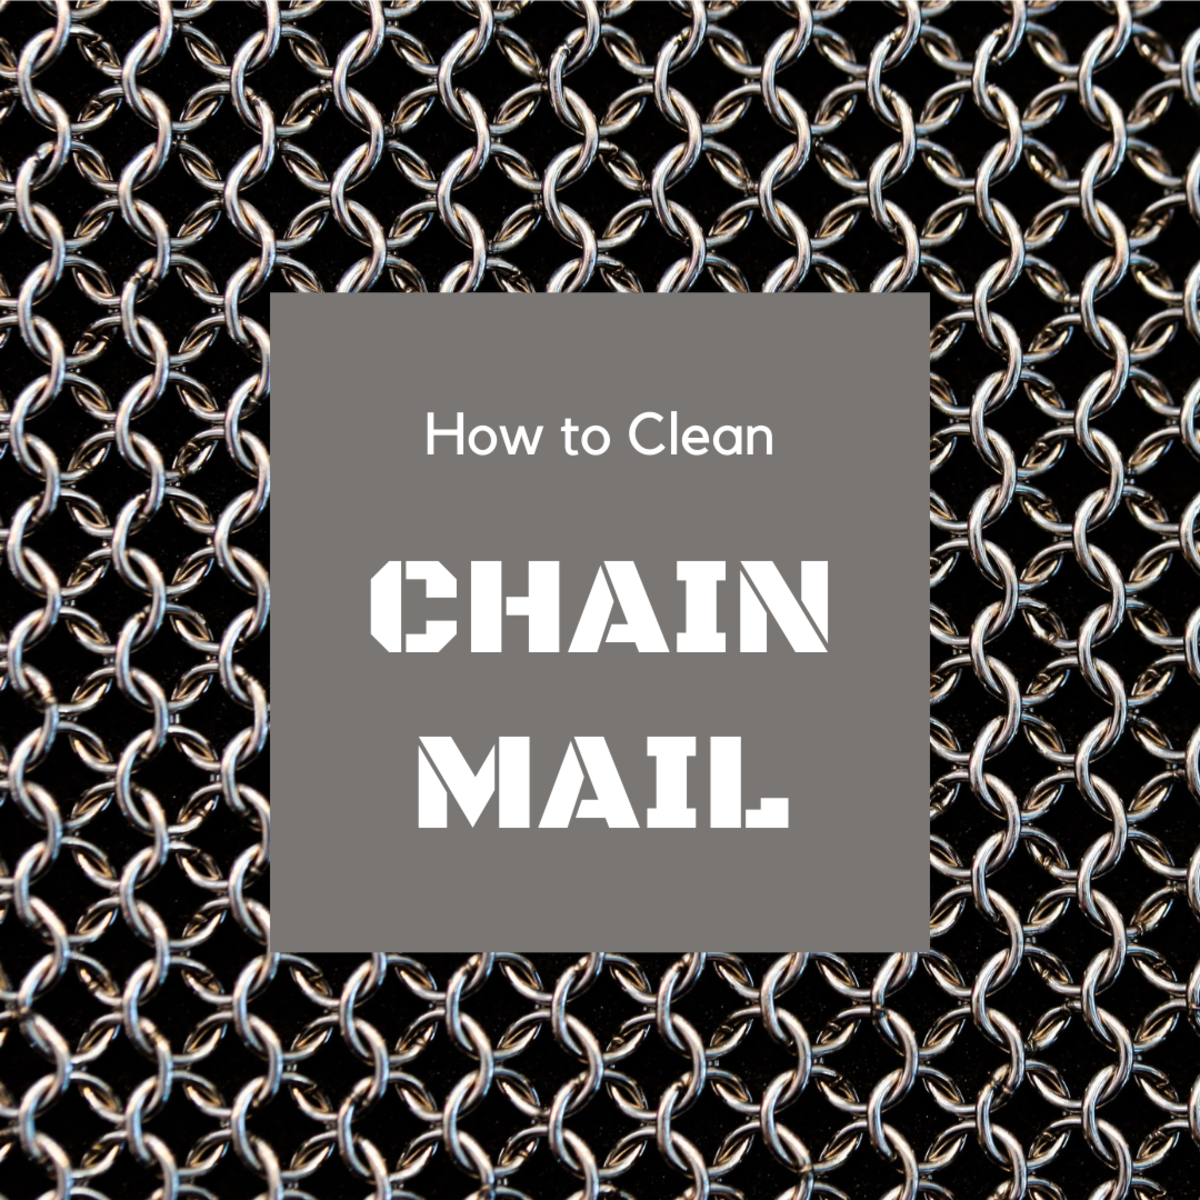 How to Clean Stainless Steel Chain Mail: 4 Techniques